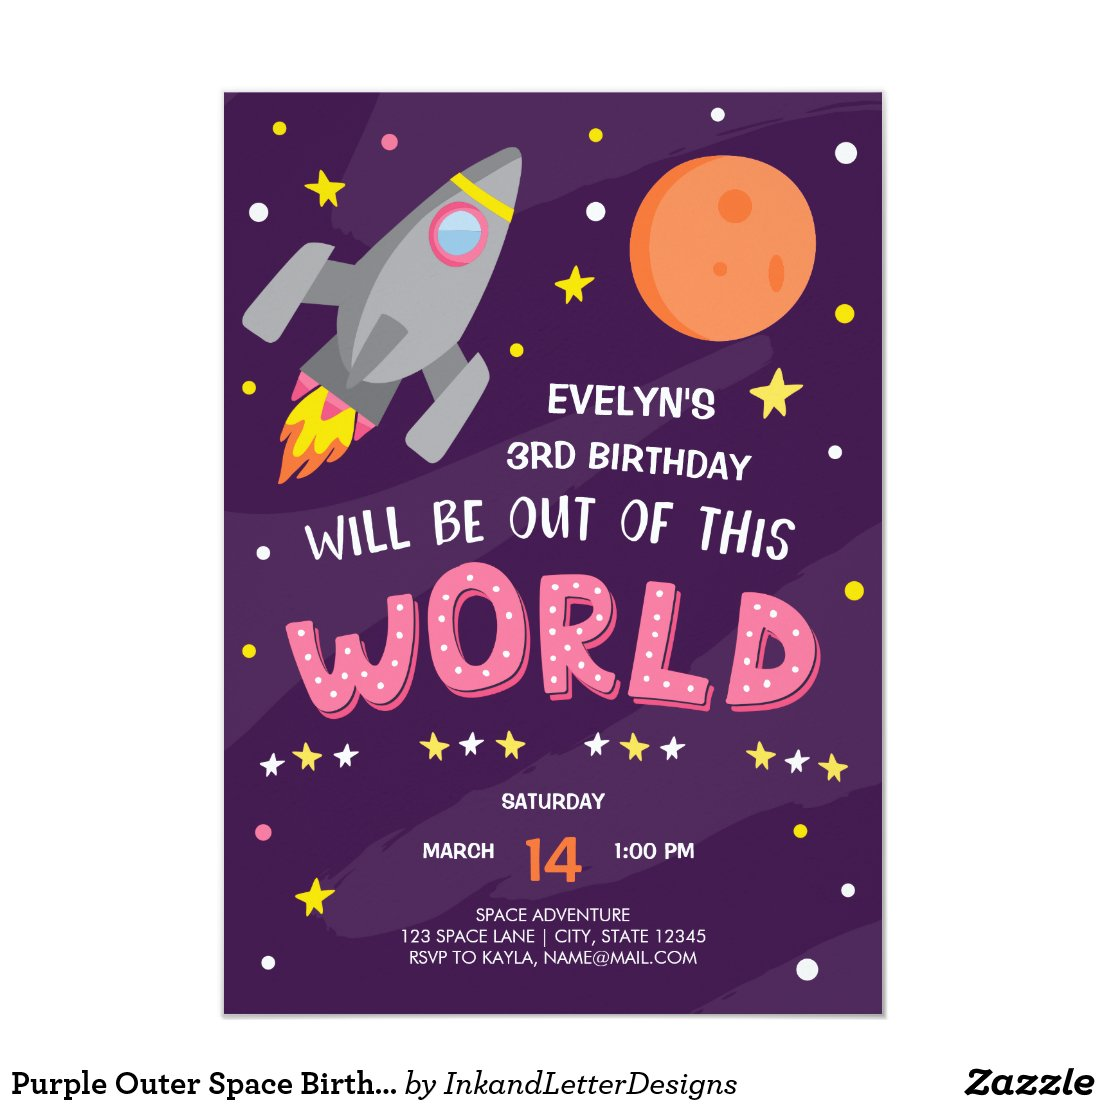 Purple Outer Space Birthday Invitation with Photo